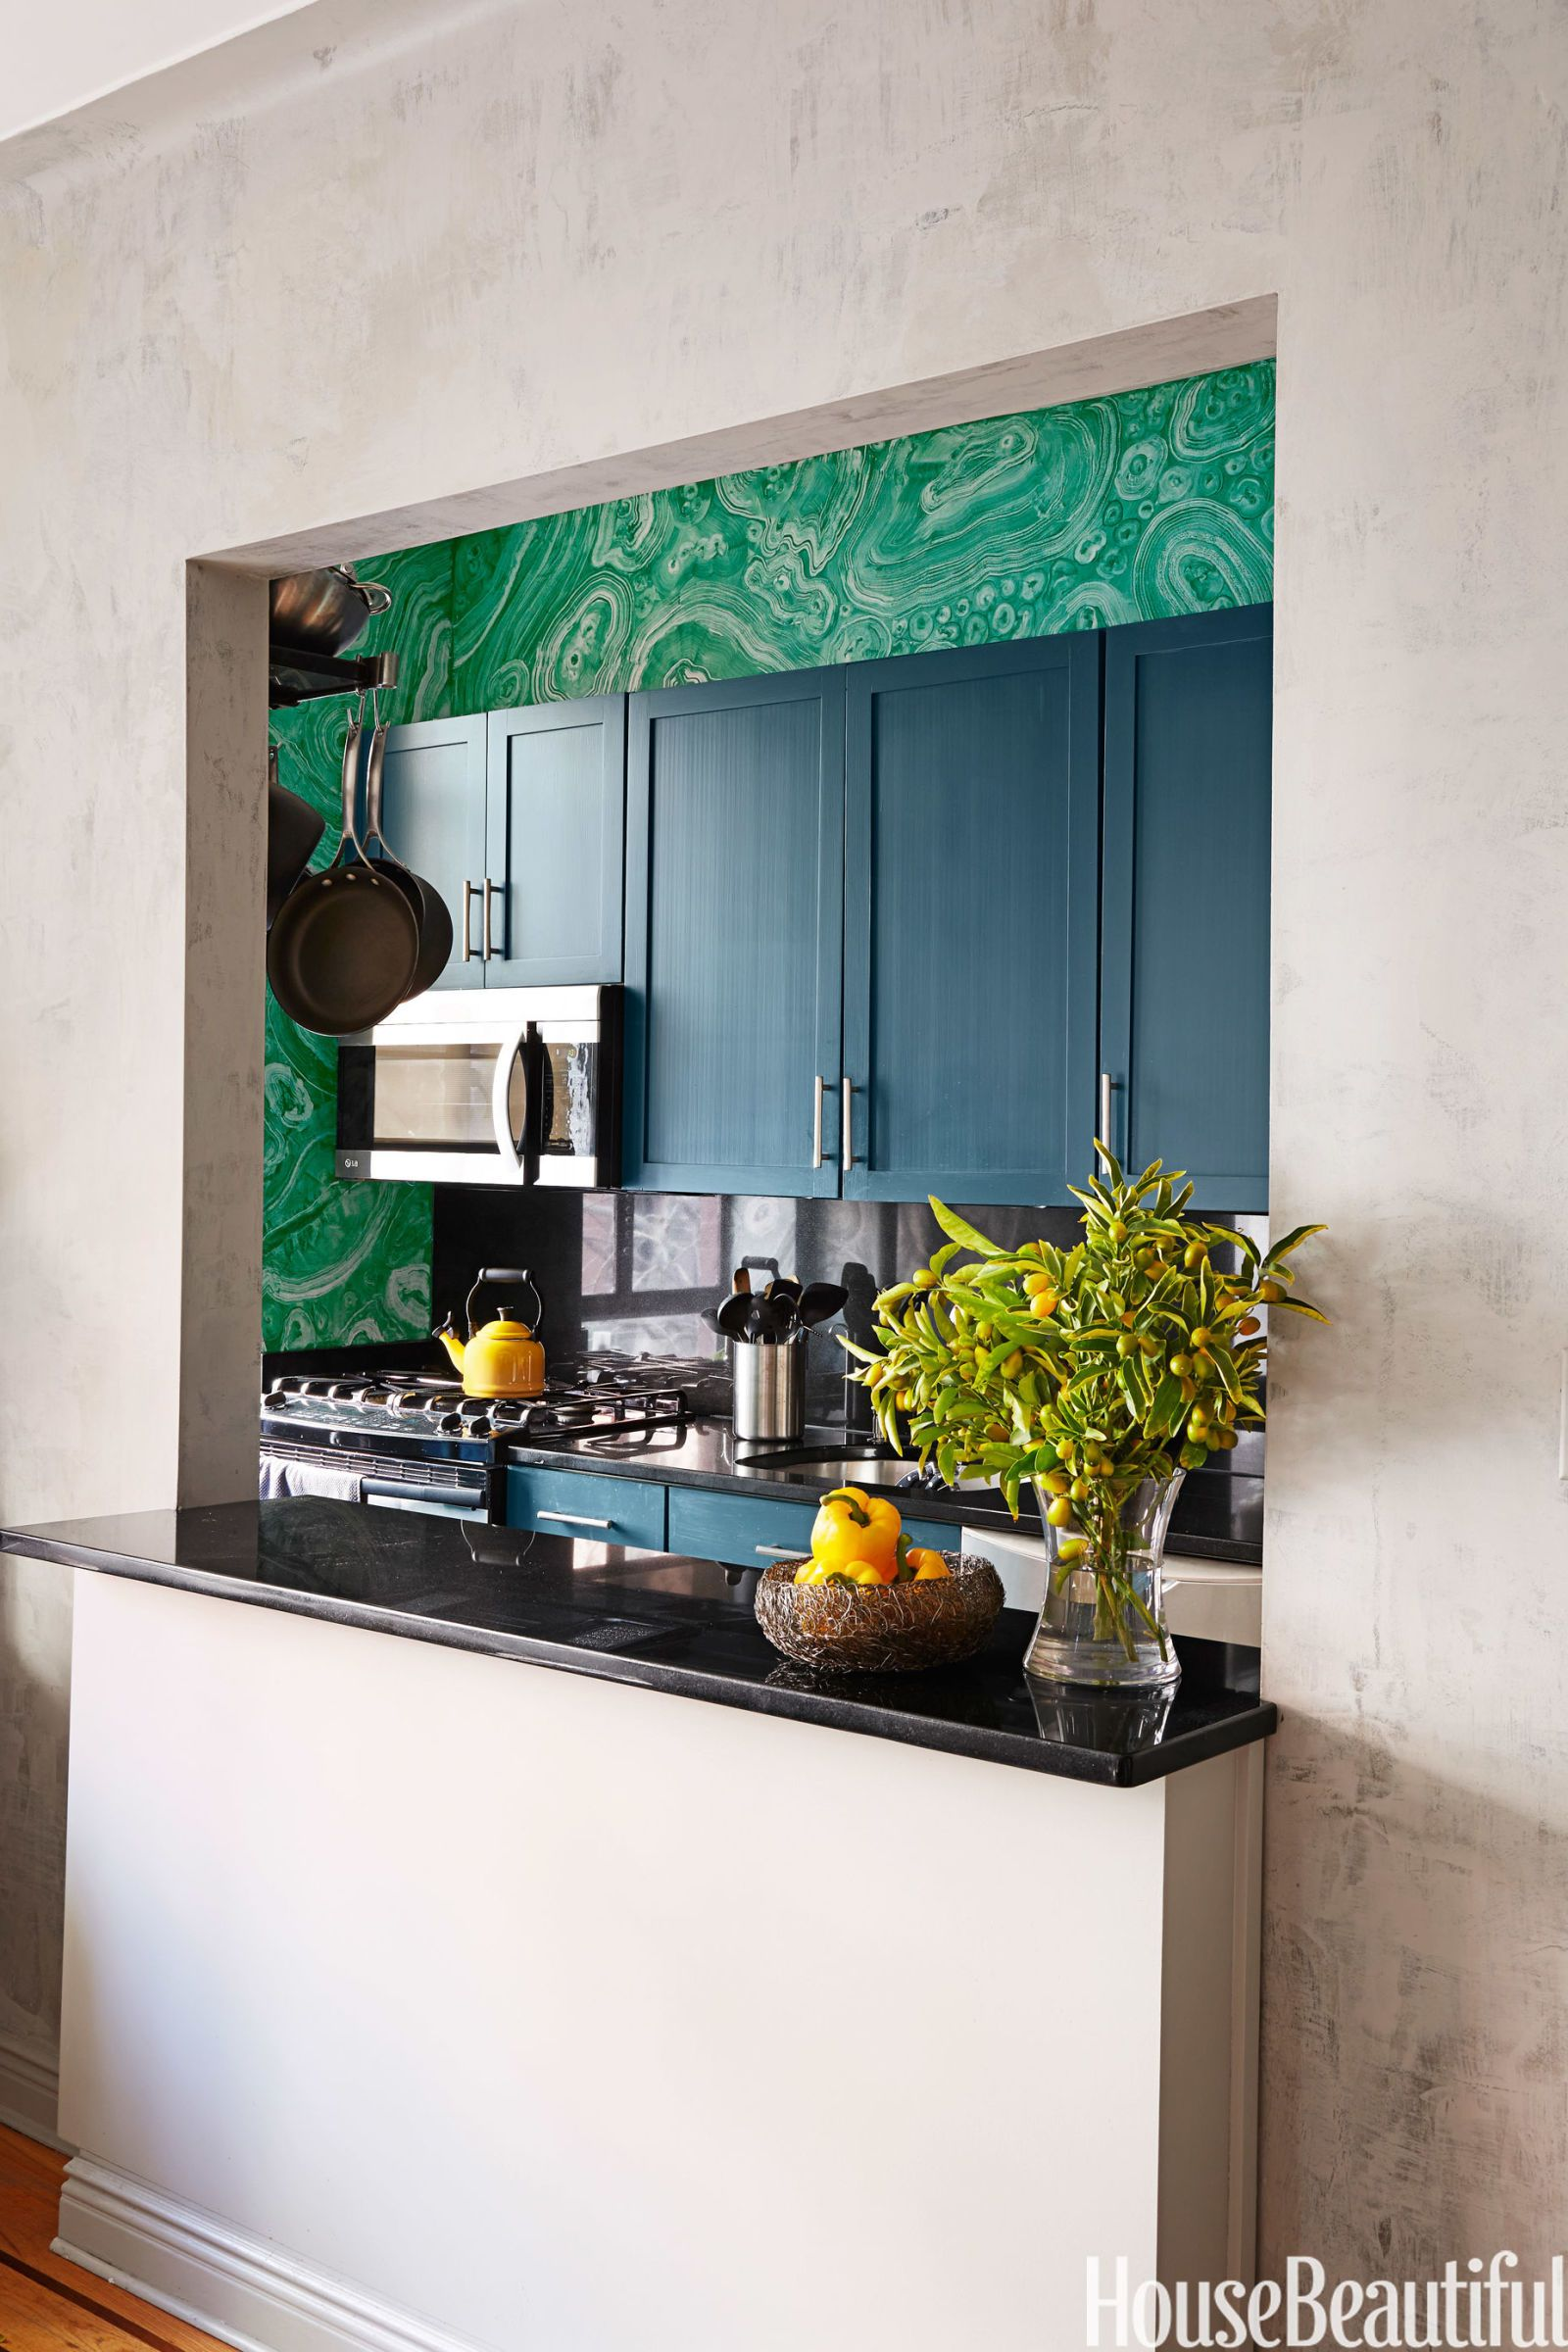 30 Small Kitchen Ideas That Maximize Style and Efficiency ...